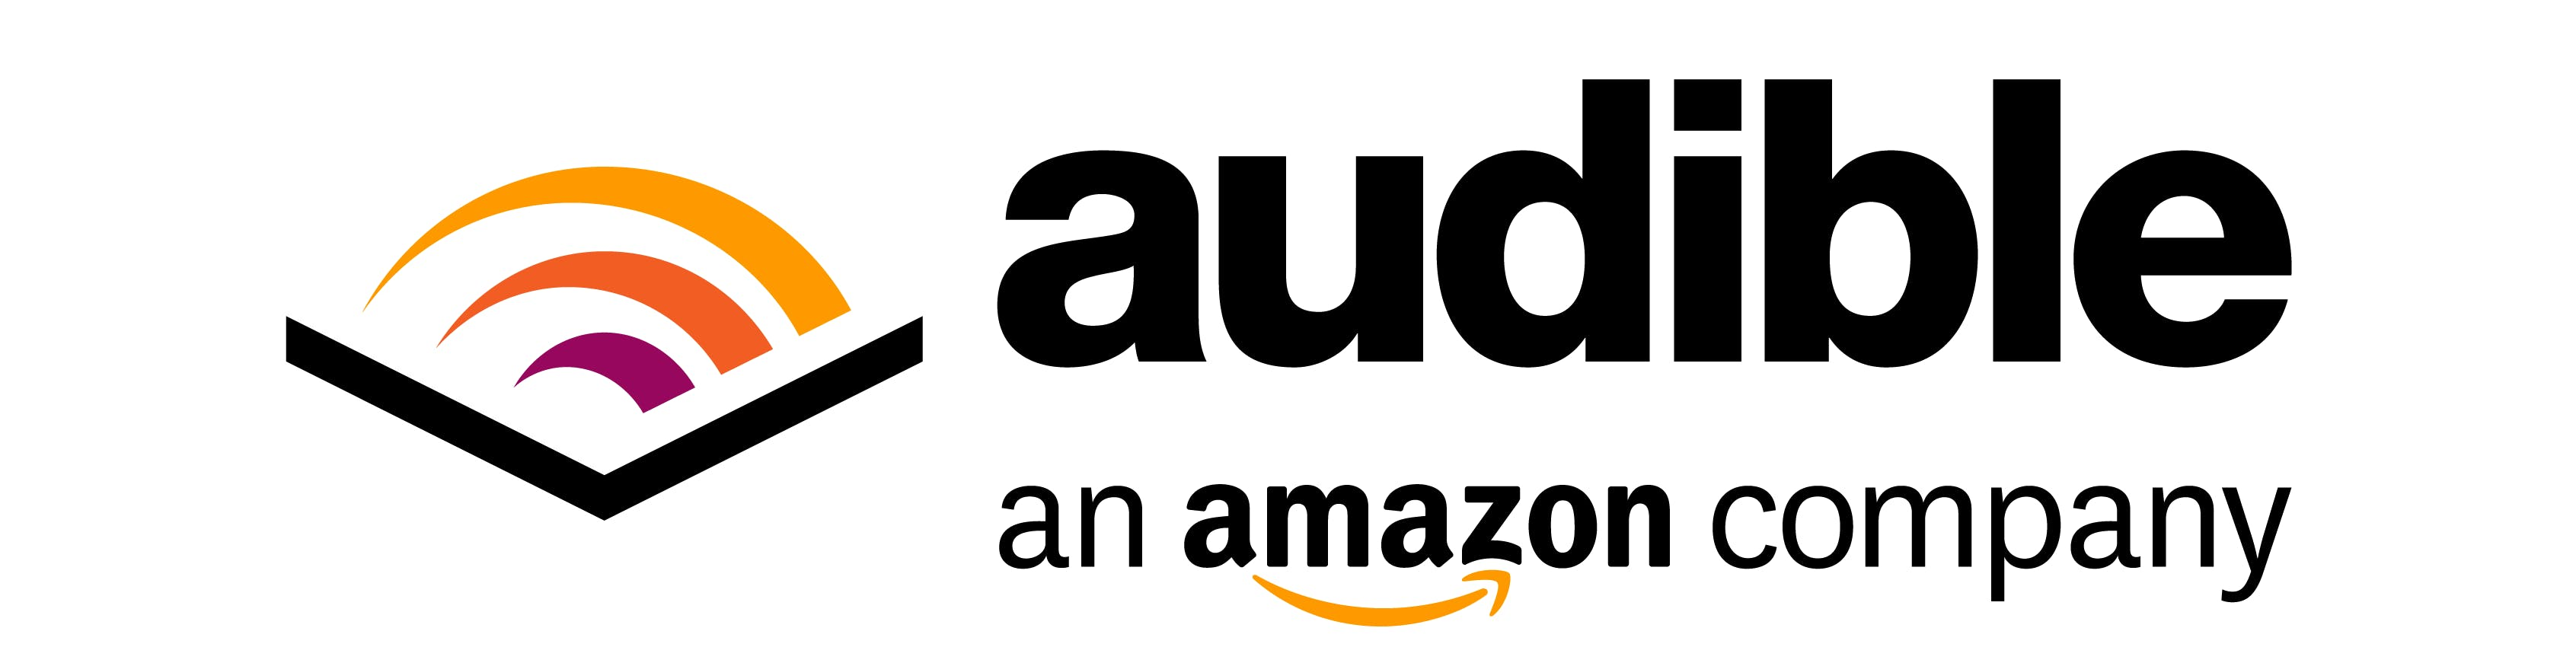 Audible Coupons | August 2019